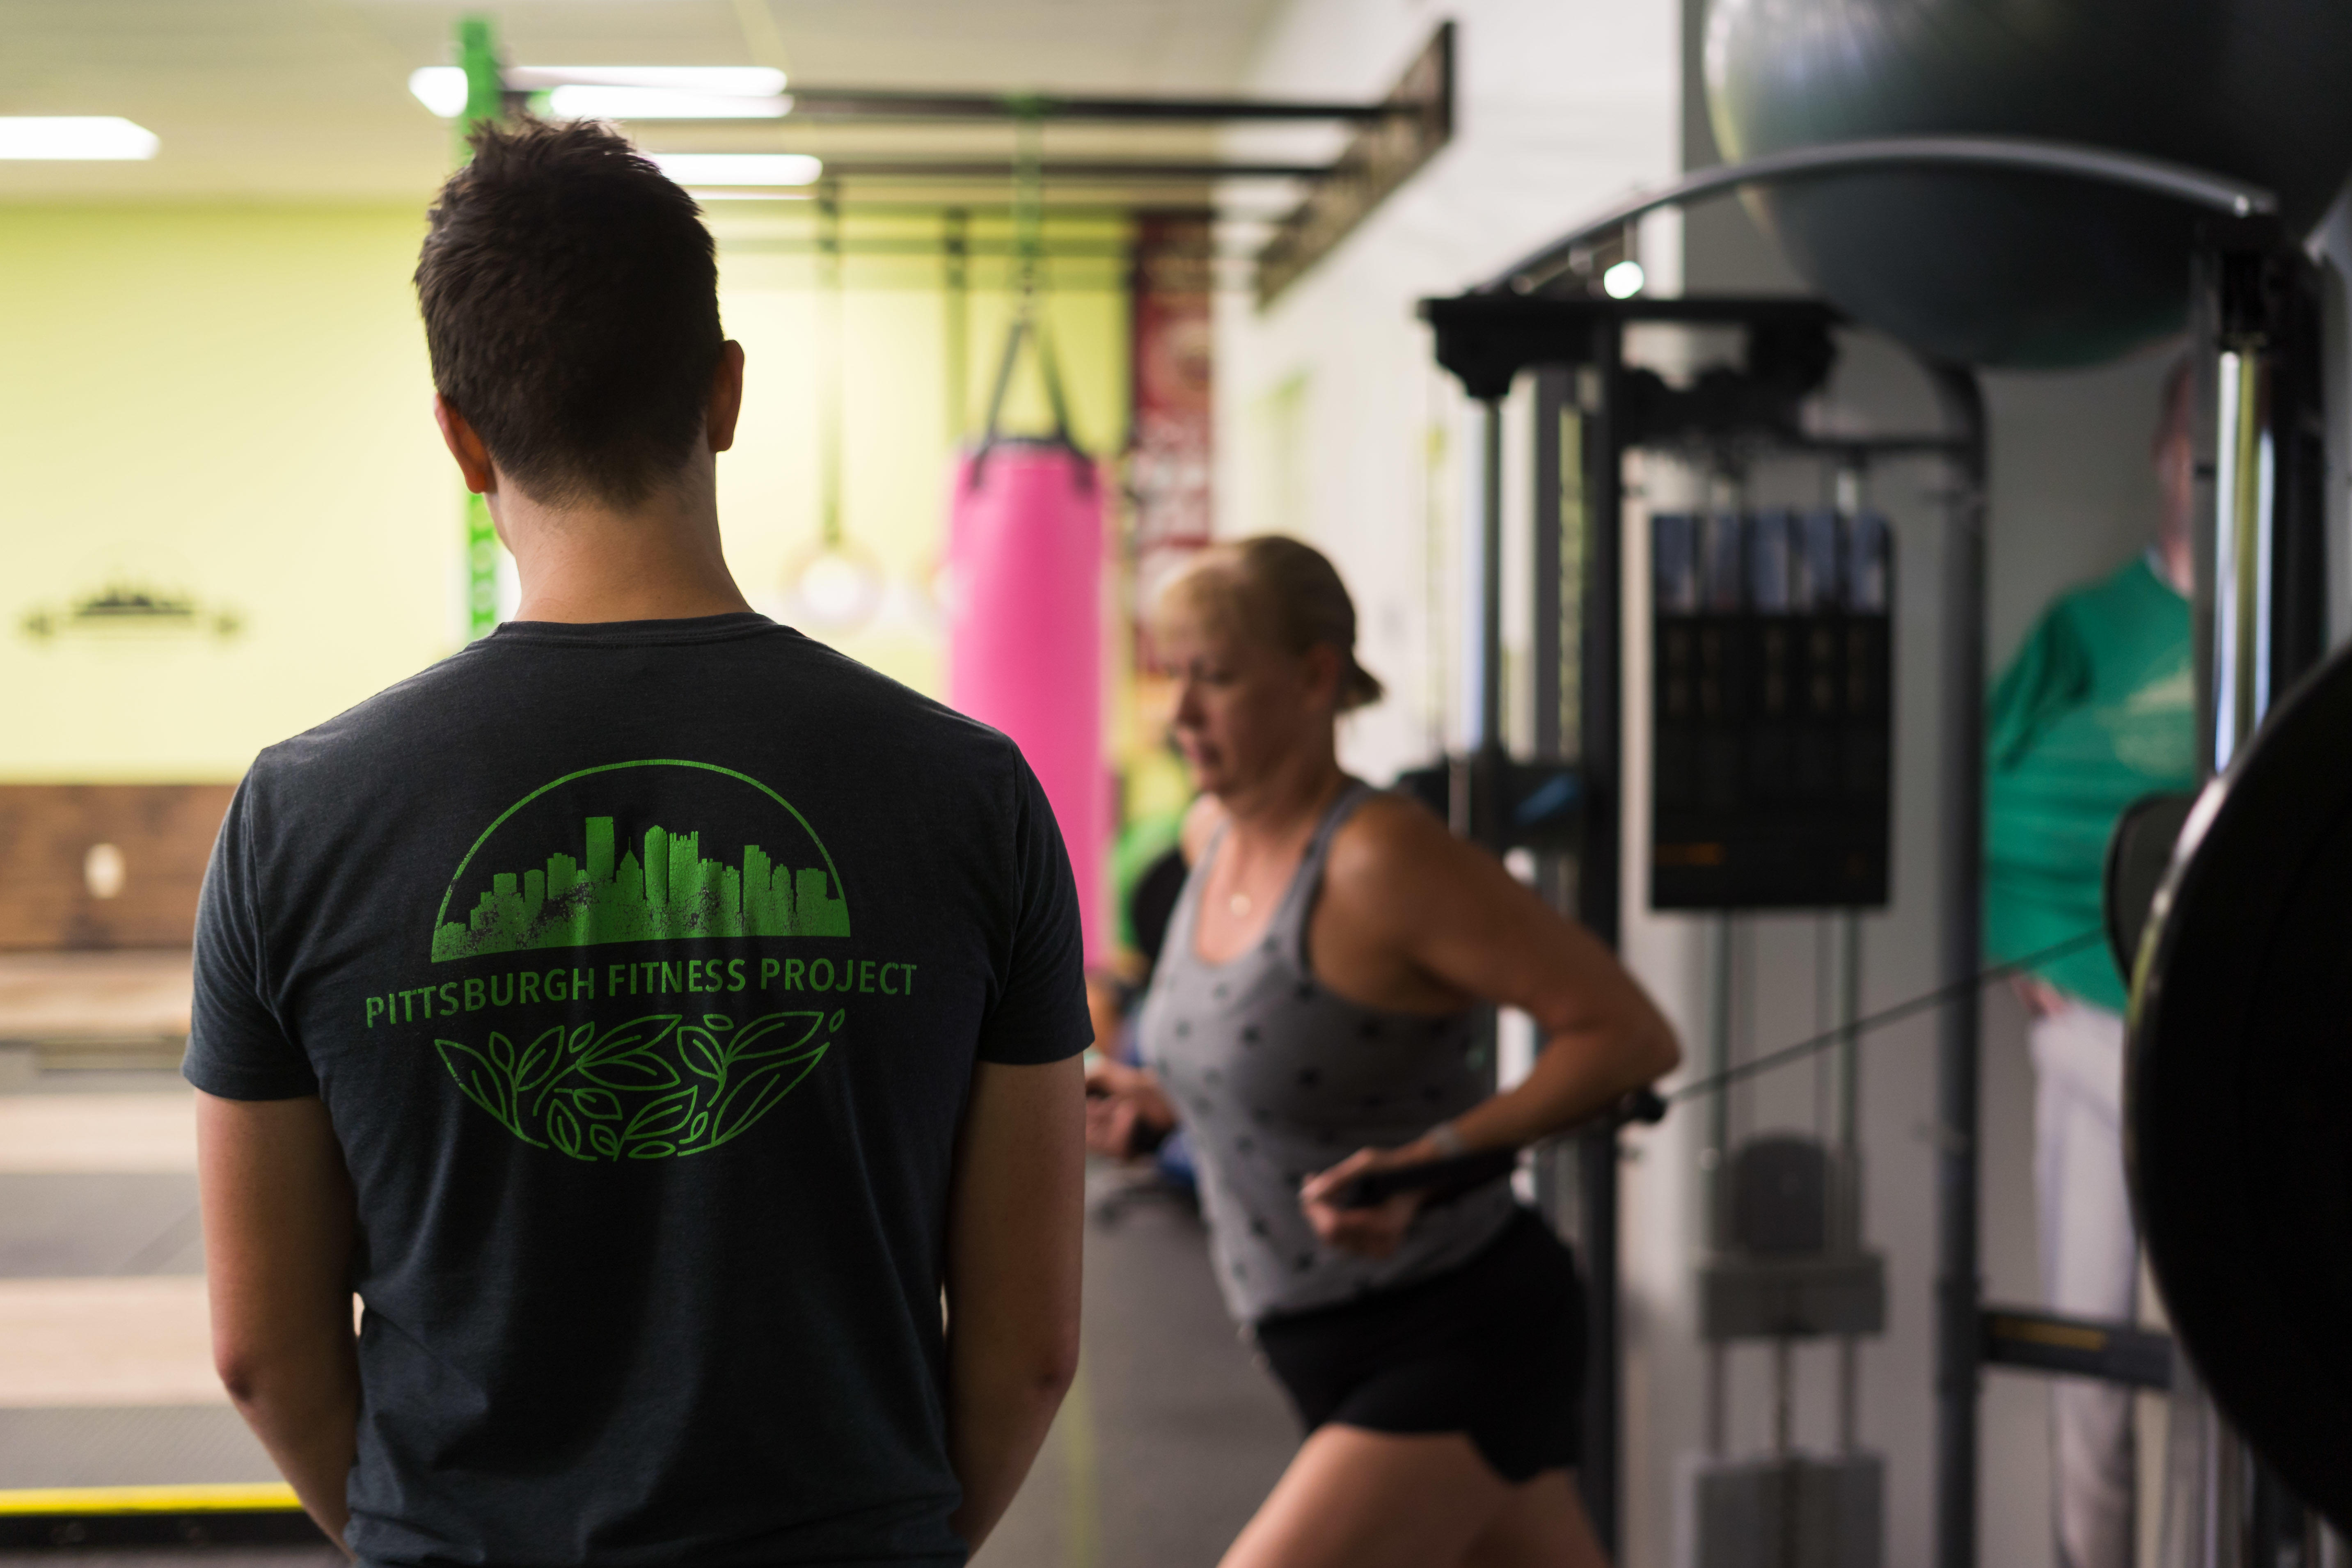 Pittsburgh Fitness Project image 3